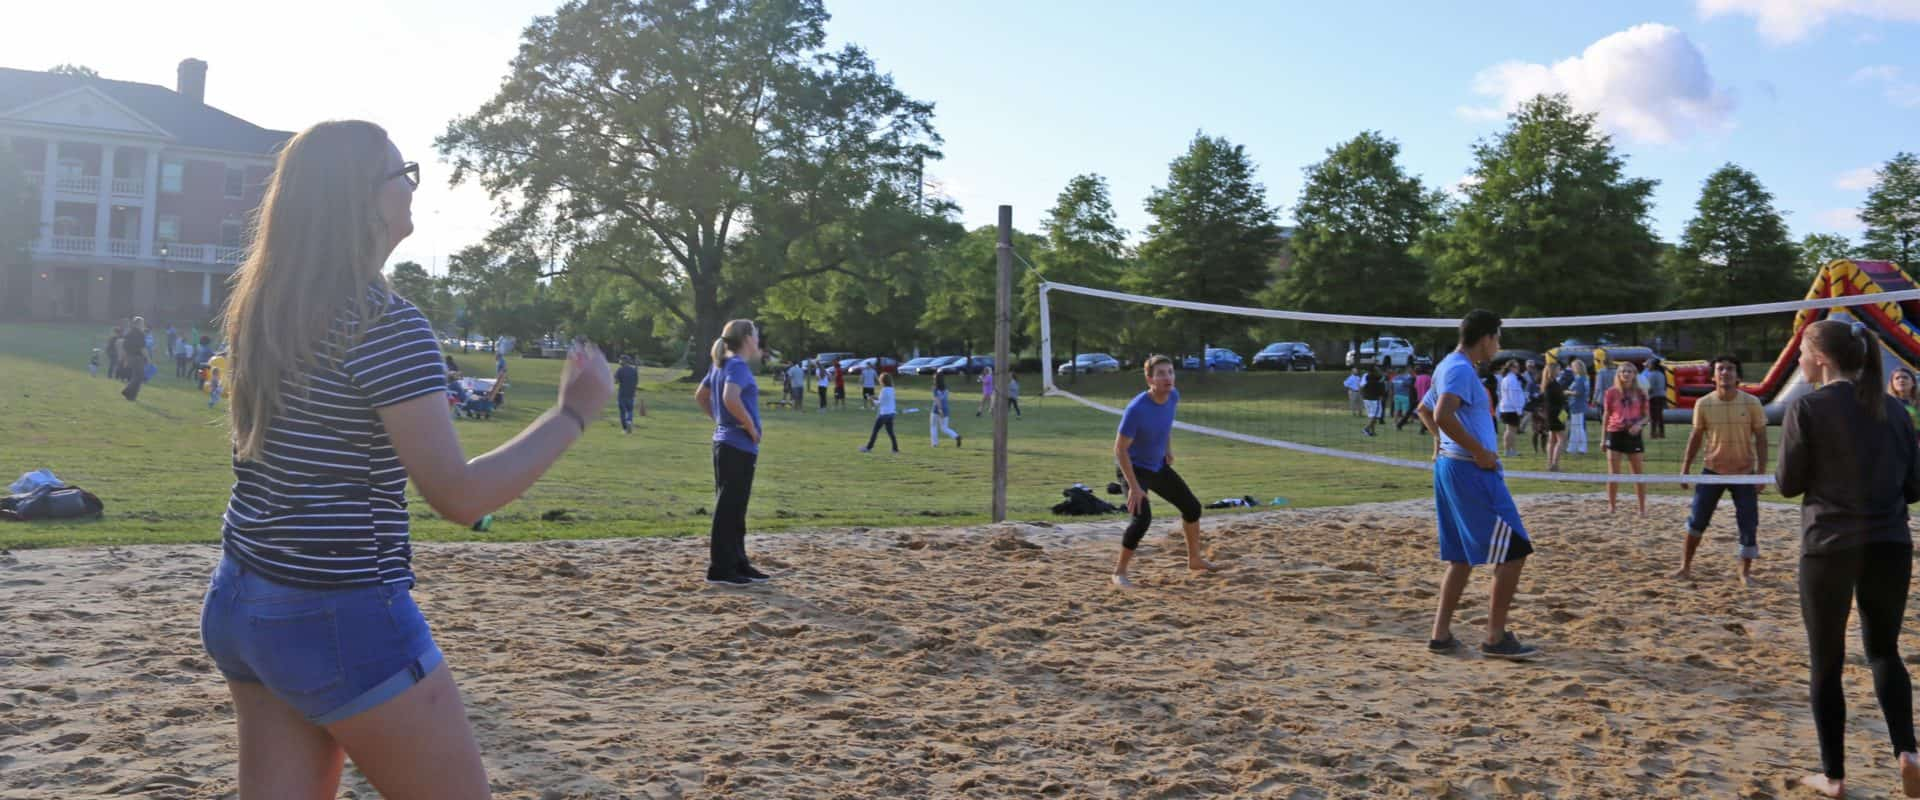 Intramurals are a great way to get involved on campus